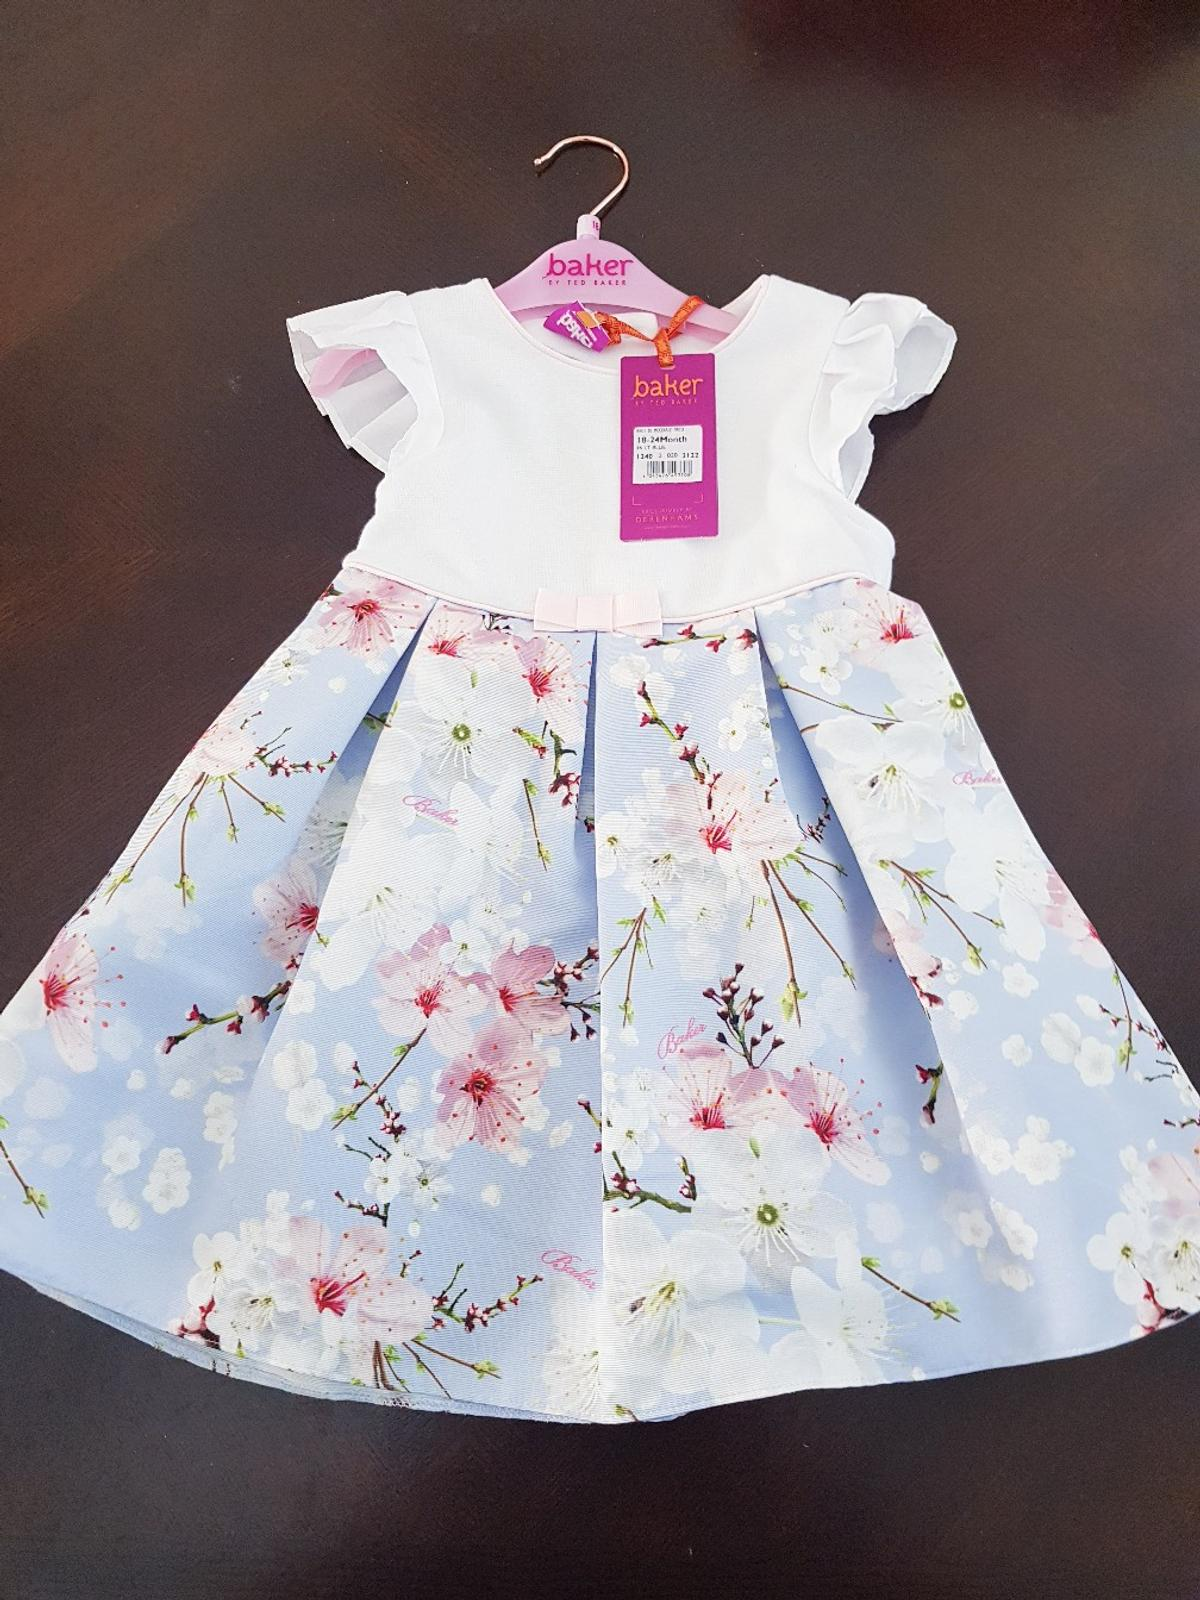 Brand New Ted baker dress. no longer needed and still has tags. Age 18-24 months